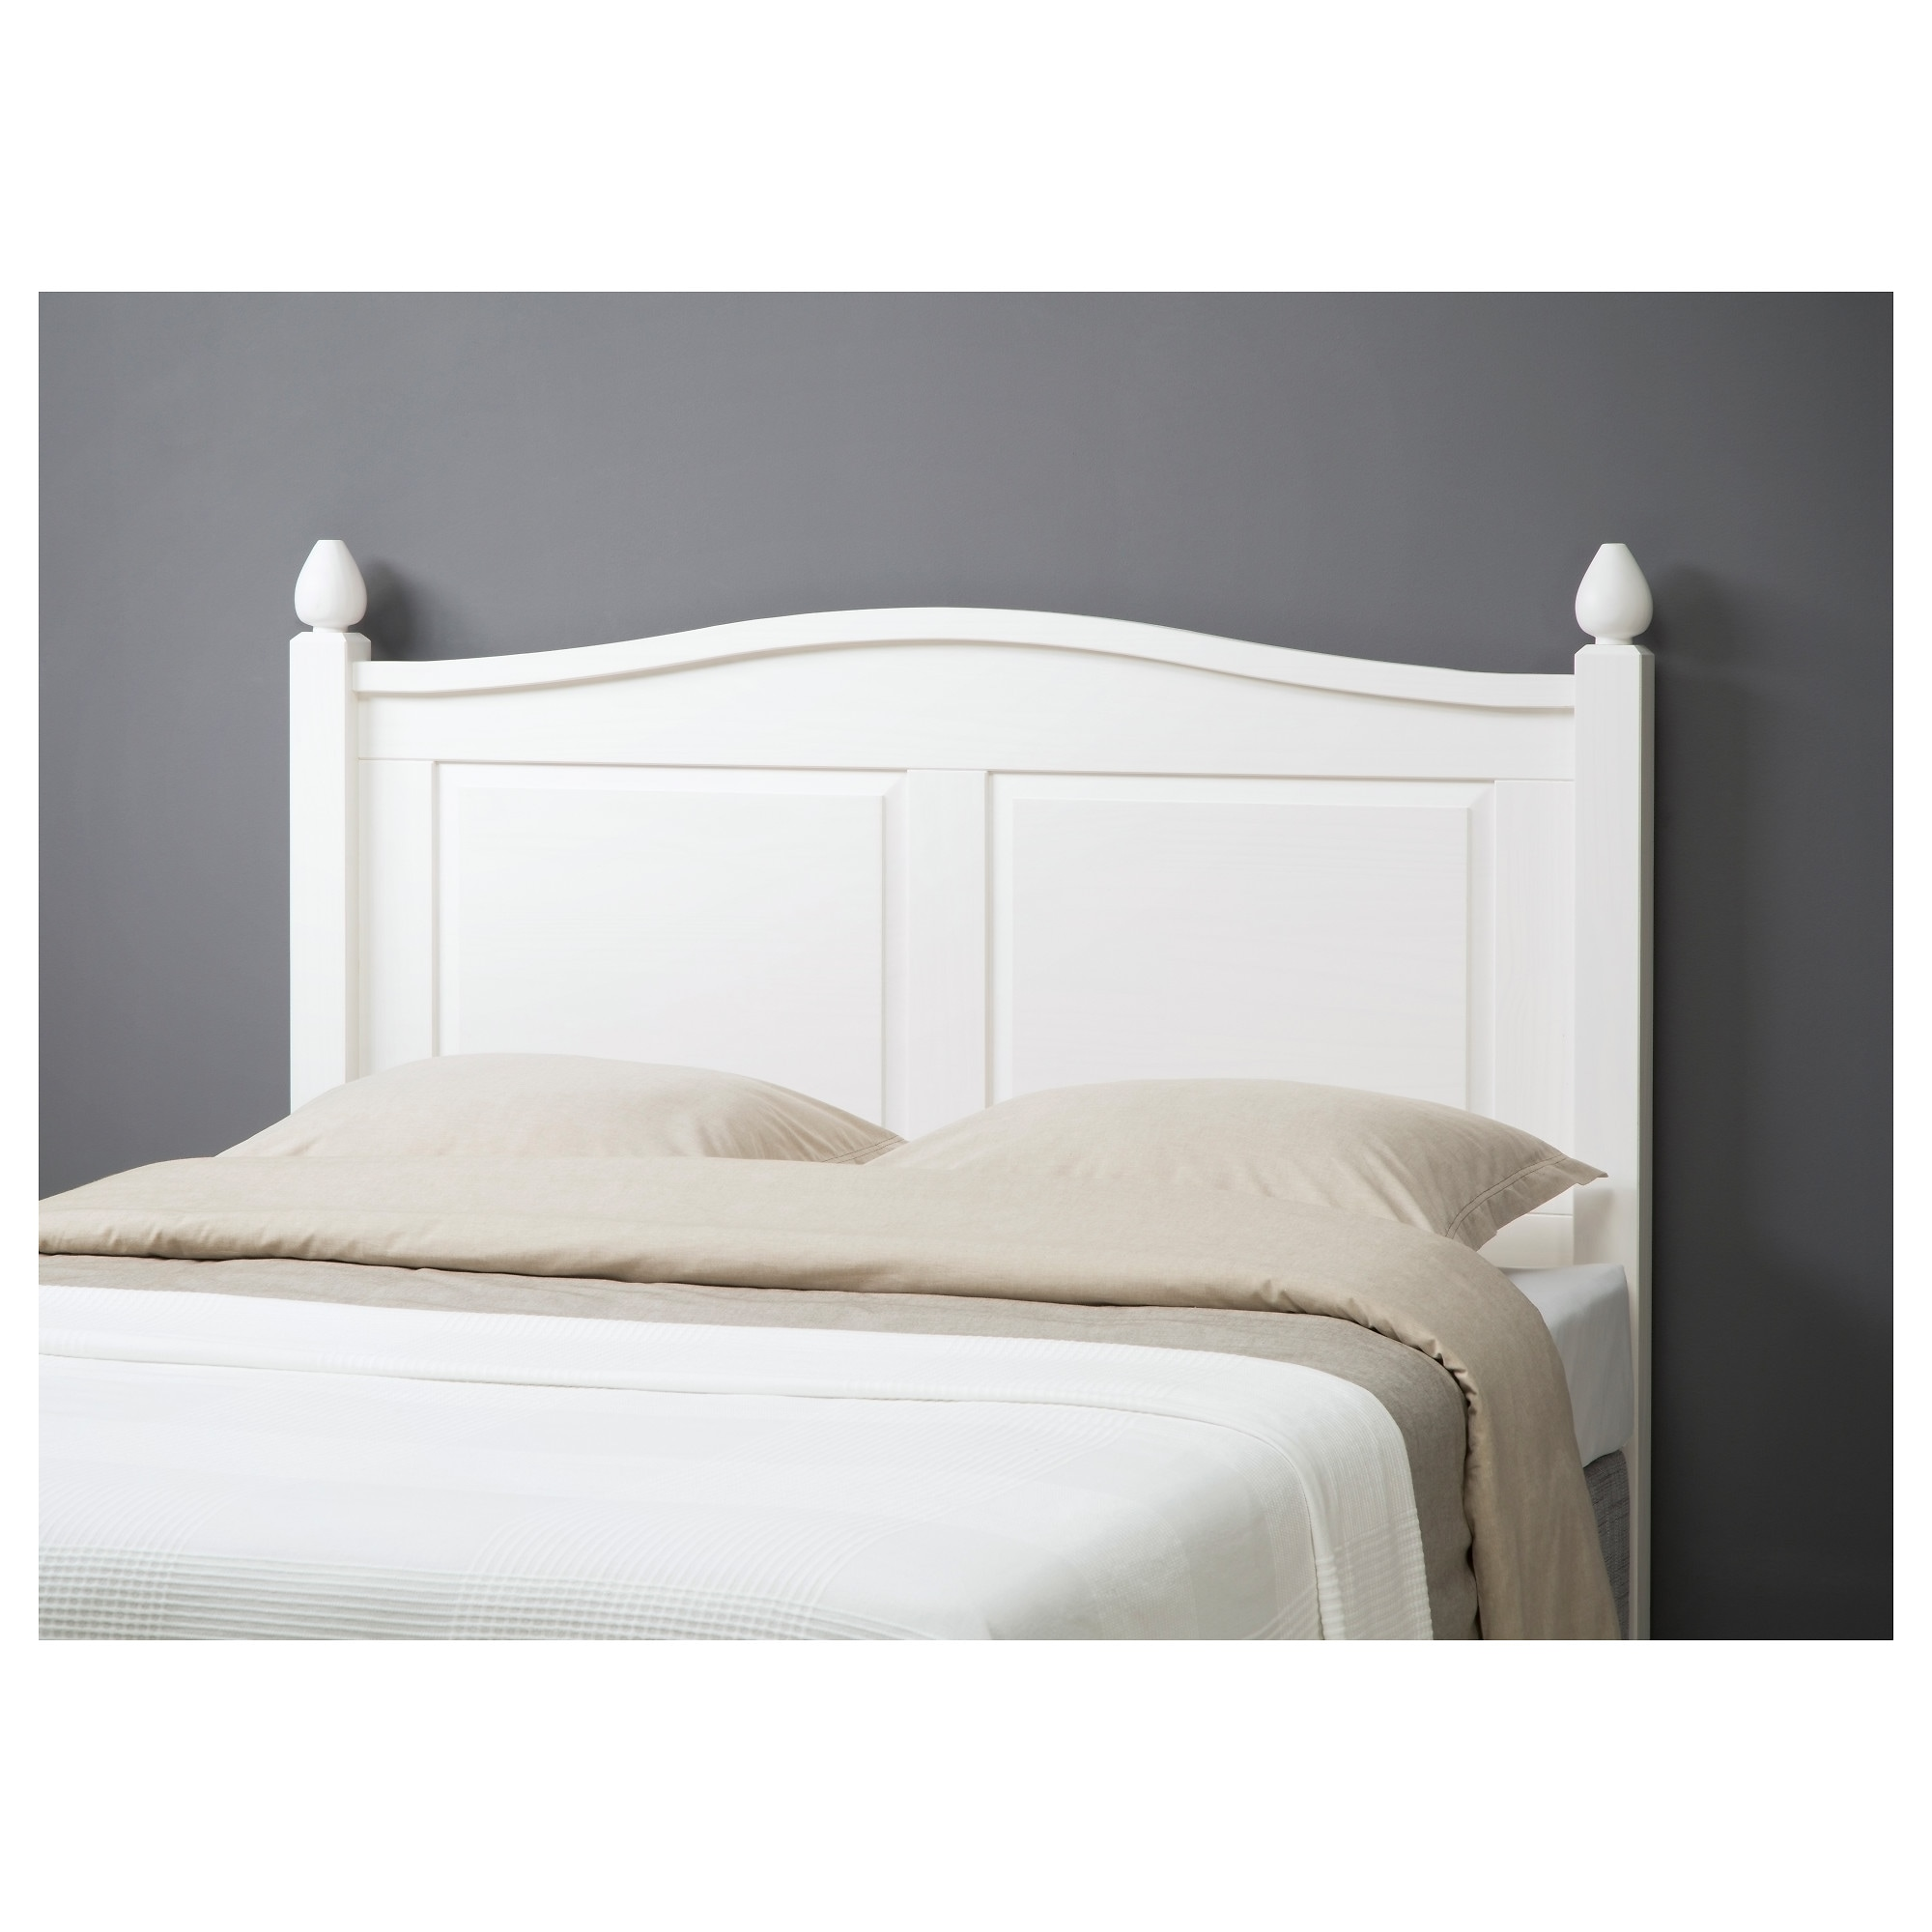 Uncategorized Ikea Headboard Queen englishsurvivalkit Home Design